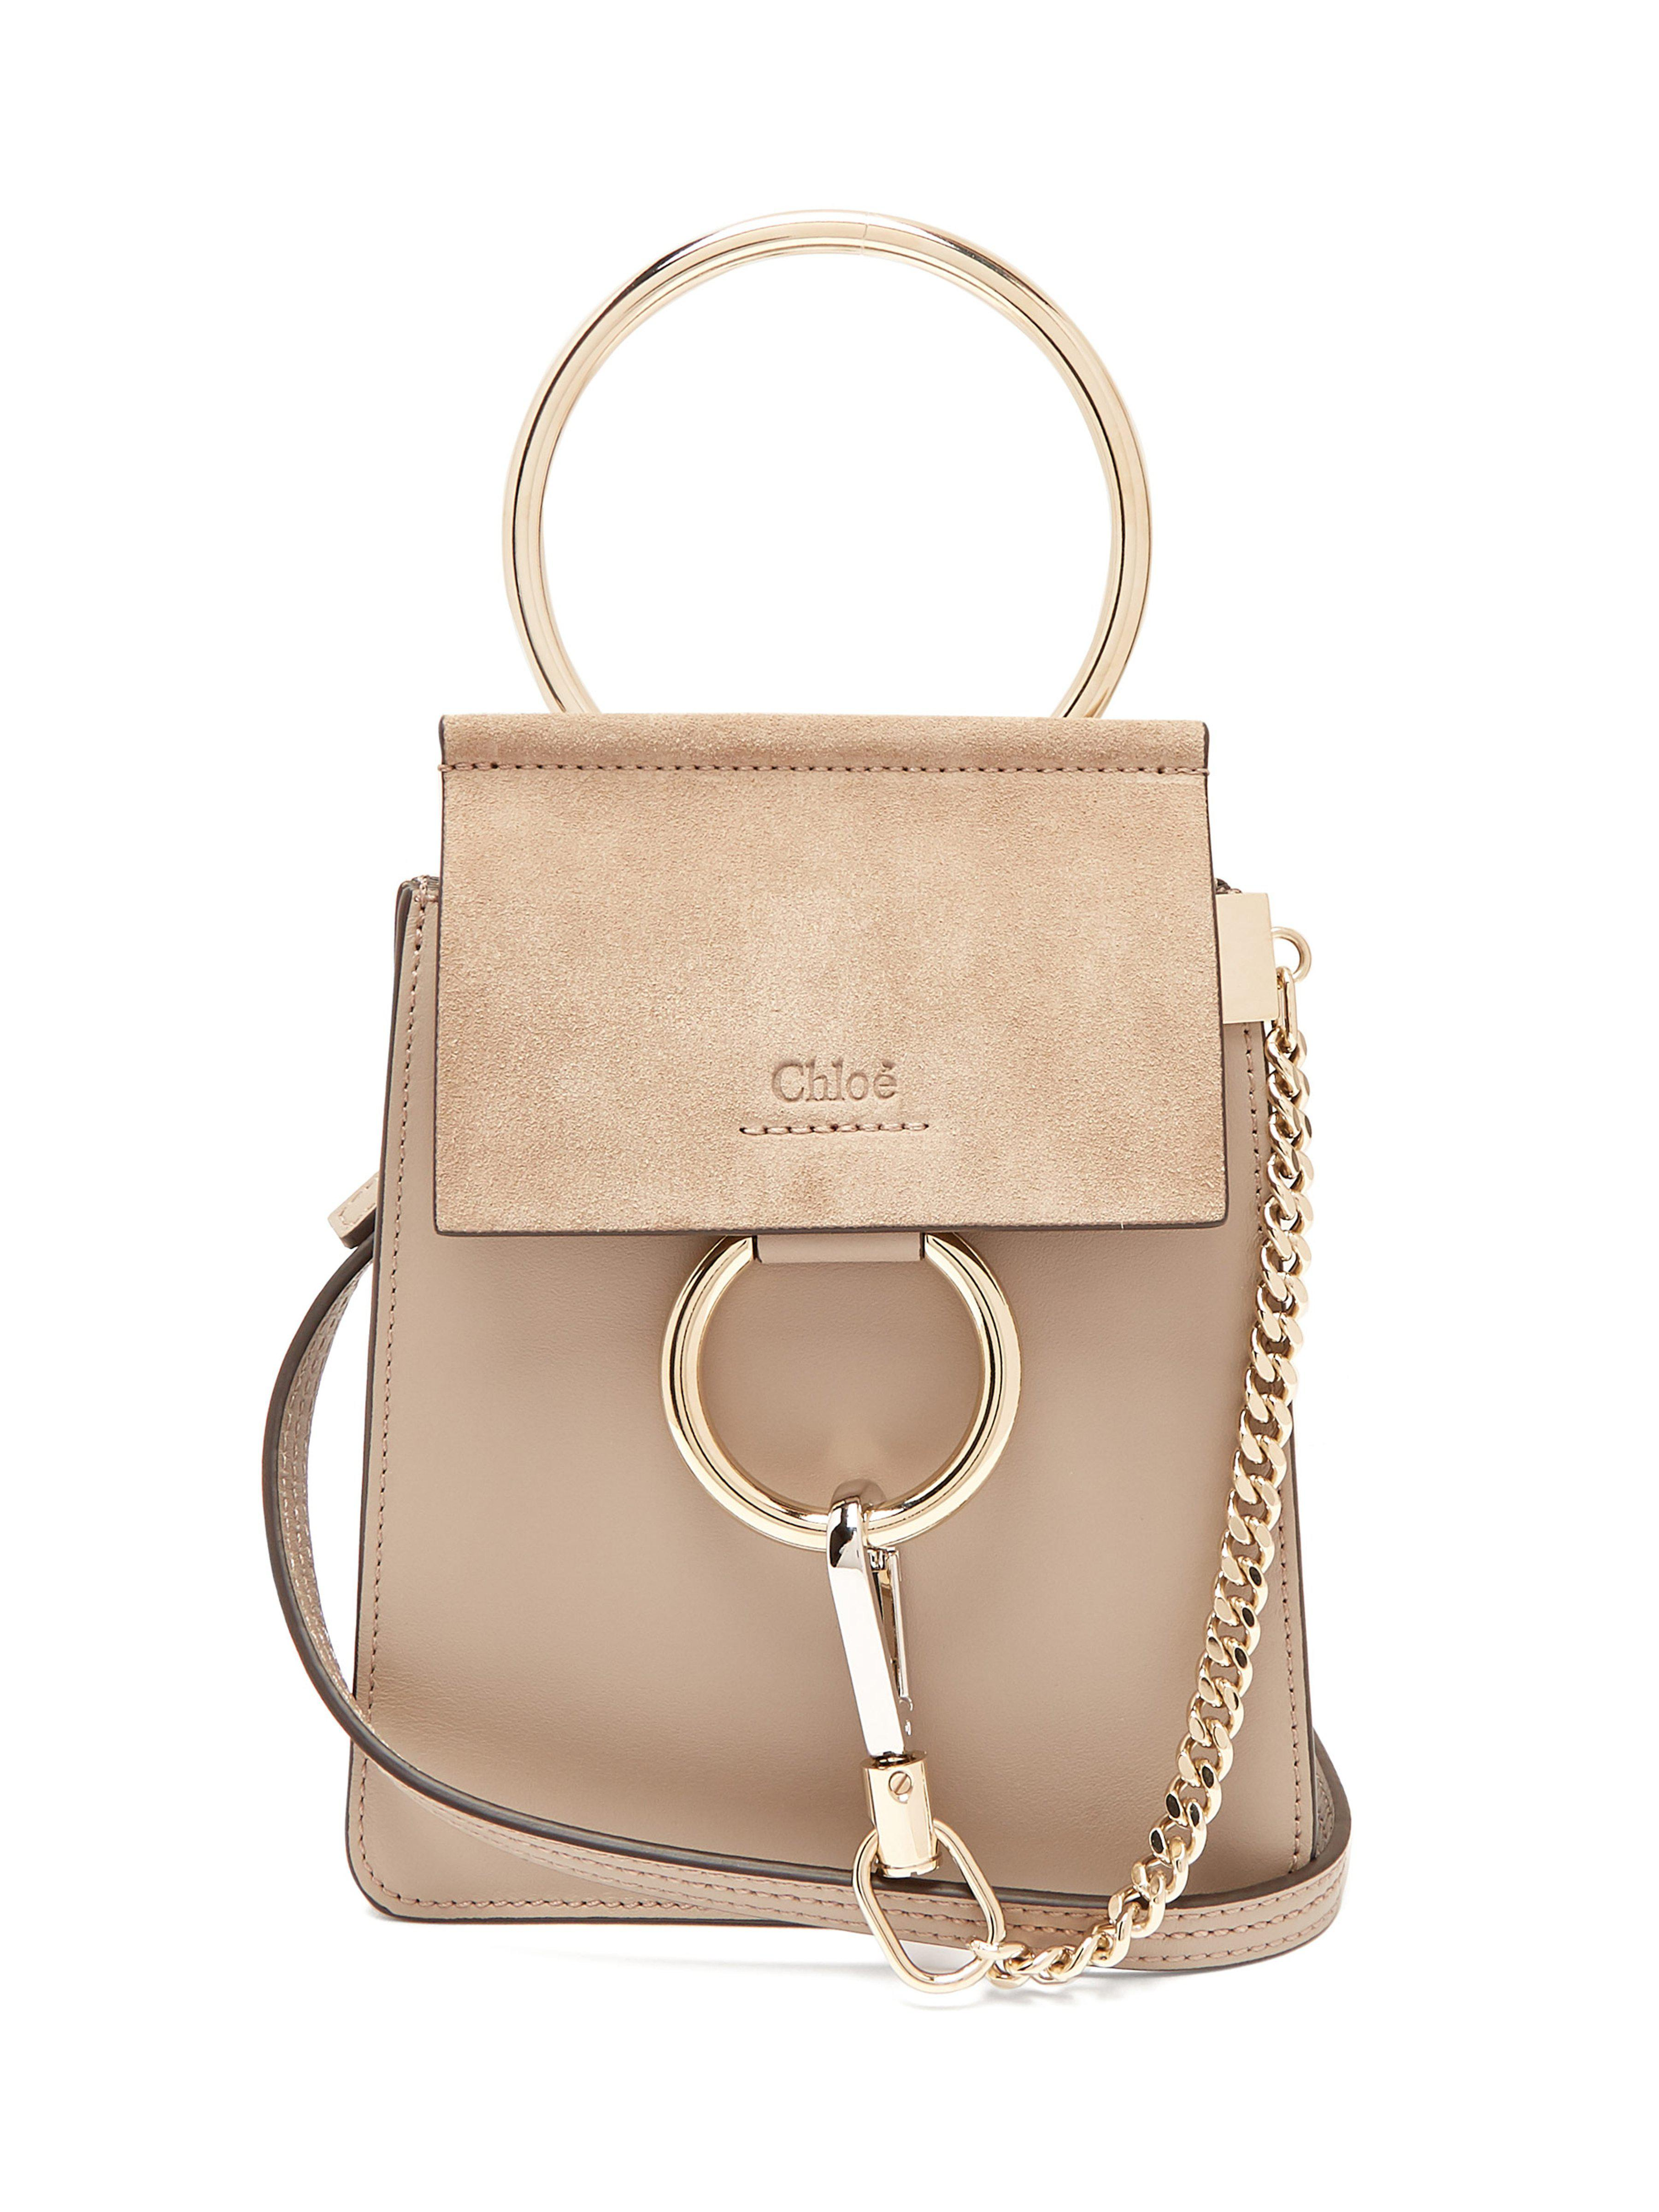 35fc7b6eca8a3 Chloé Faye Mini Suede And Leather Cross-body Bag in Gray - Lyst